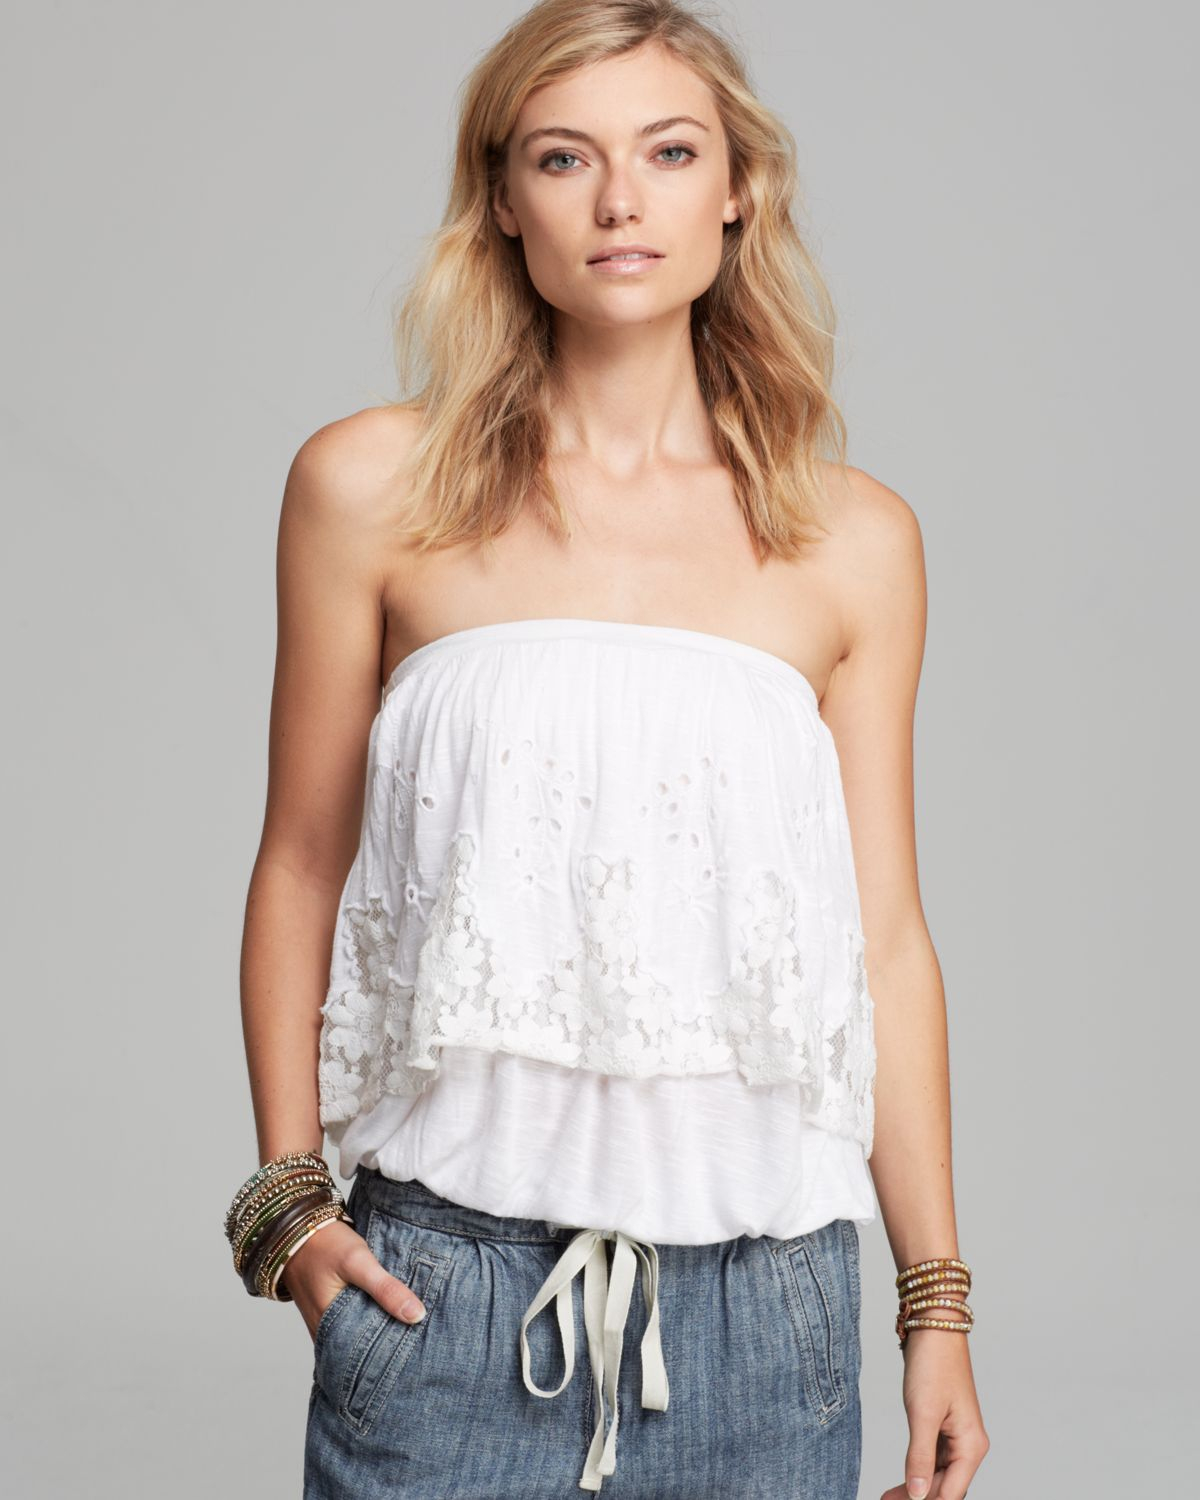 bb9f1557d0 Lyst - Free People Tube Top Bridgette Lace in White